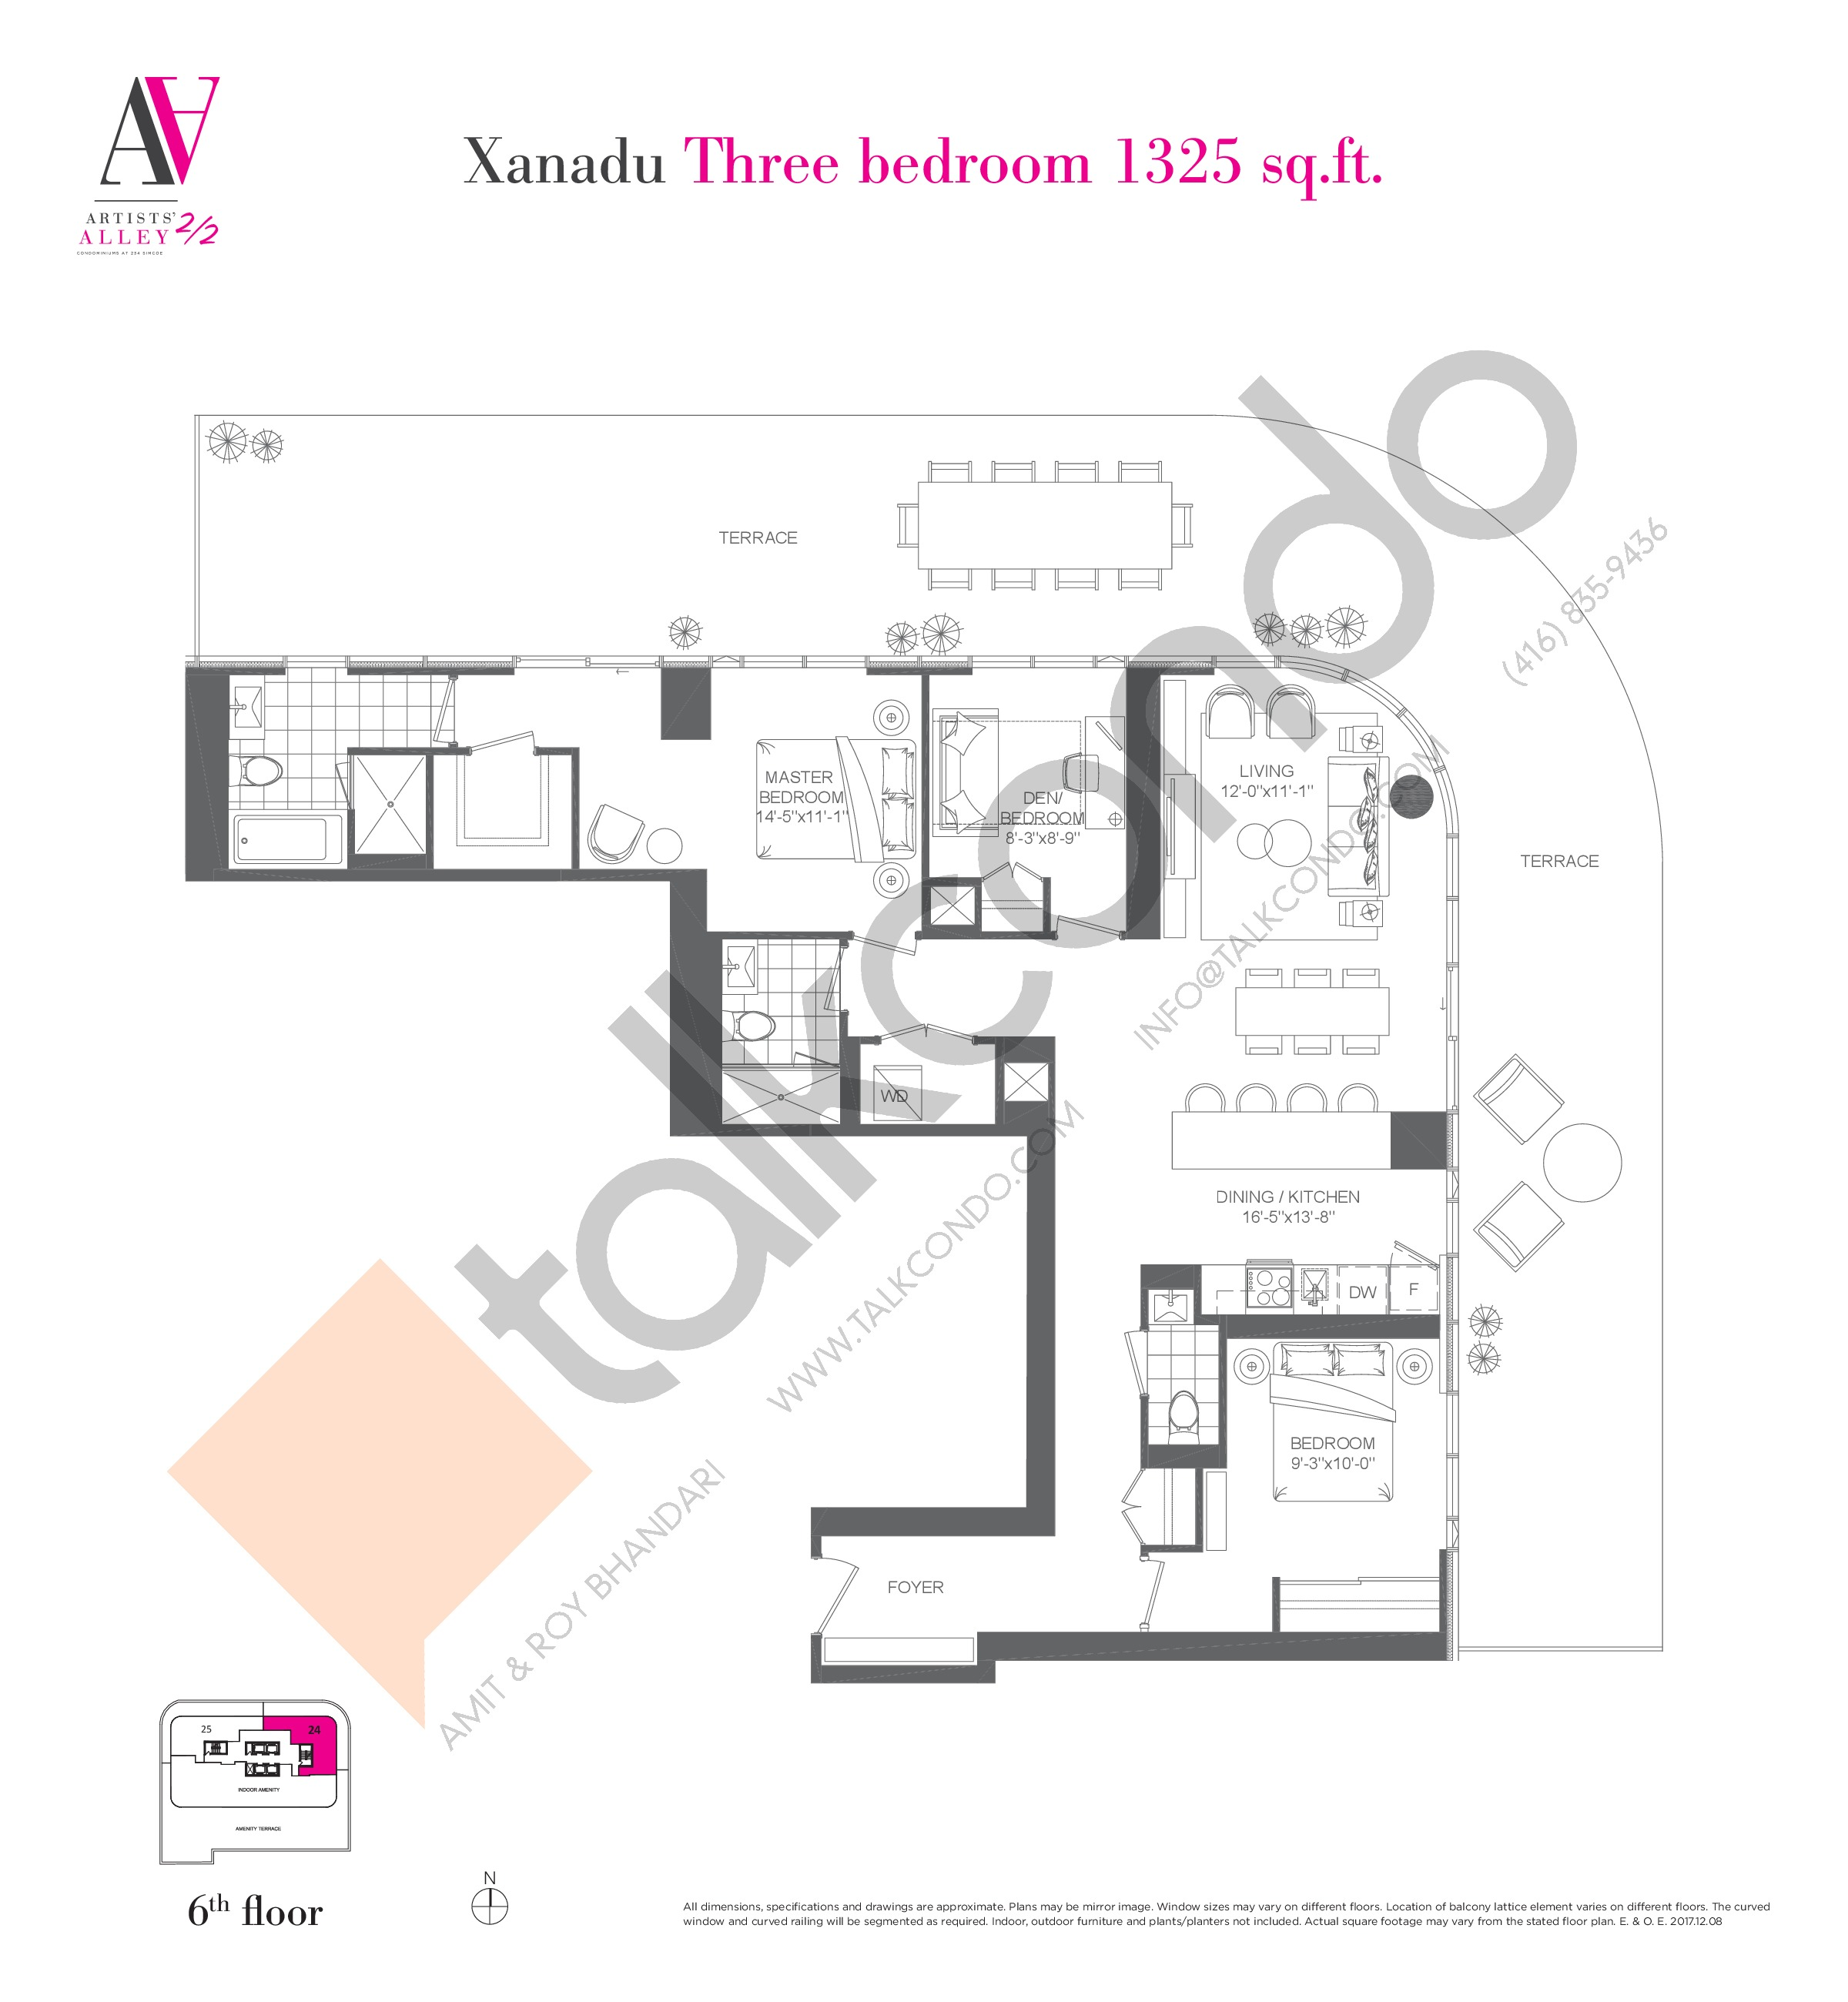 Xanadu Floor Plan at Artists' Alley 2 Condos - 1325 sq.ft